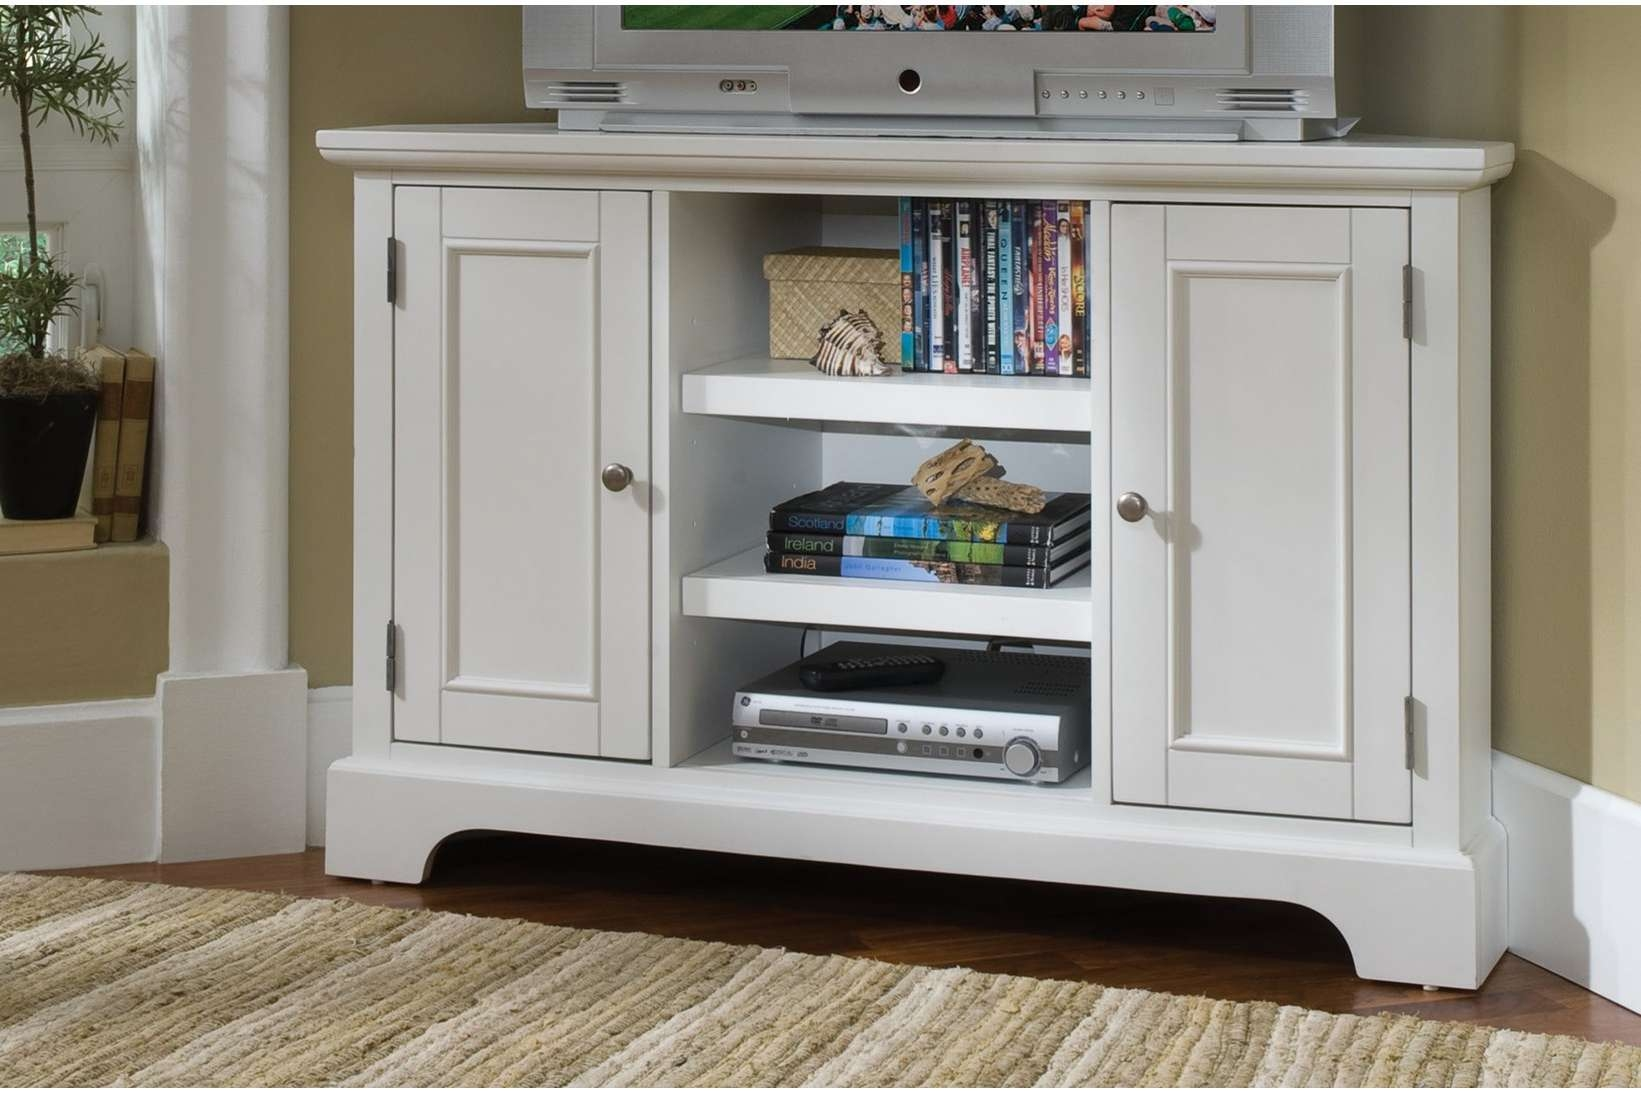 White Corner Tv Cabinet With 2 Doors On Both Sides And 3 Open Intended For Large White Tv Stands (View 14 of 15)